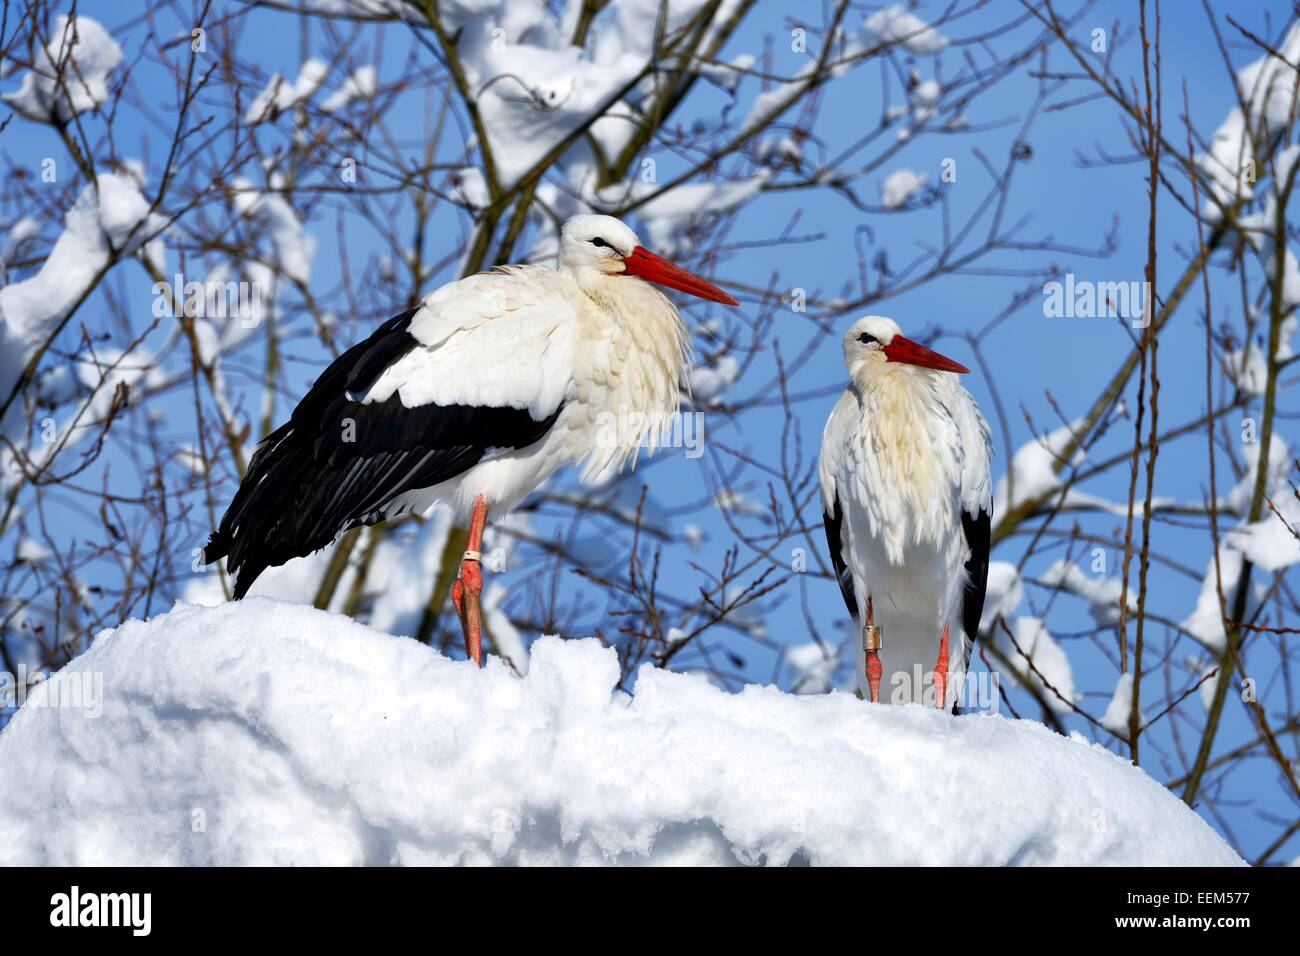 White Storks (Ciconia ciconia), couple standing on snowy nest, Switzerland - Stock Image